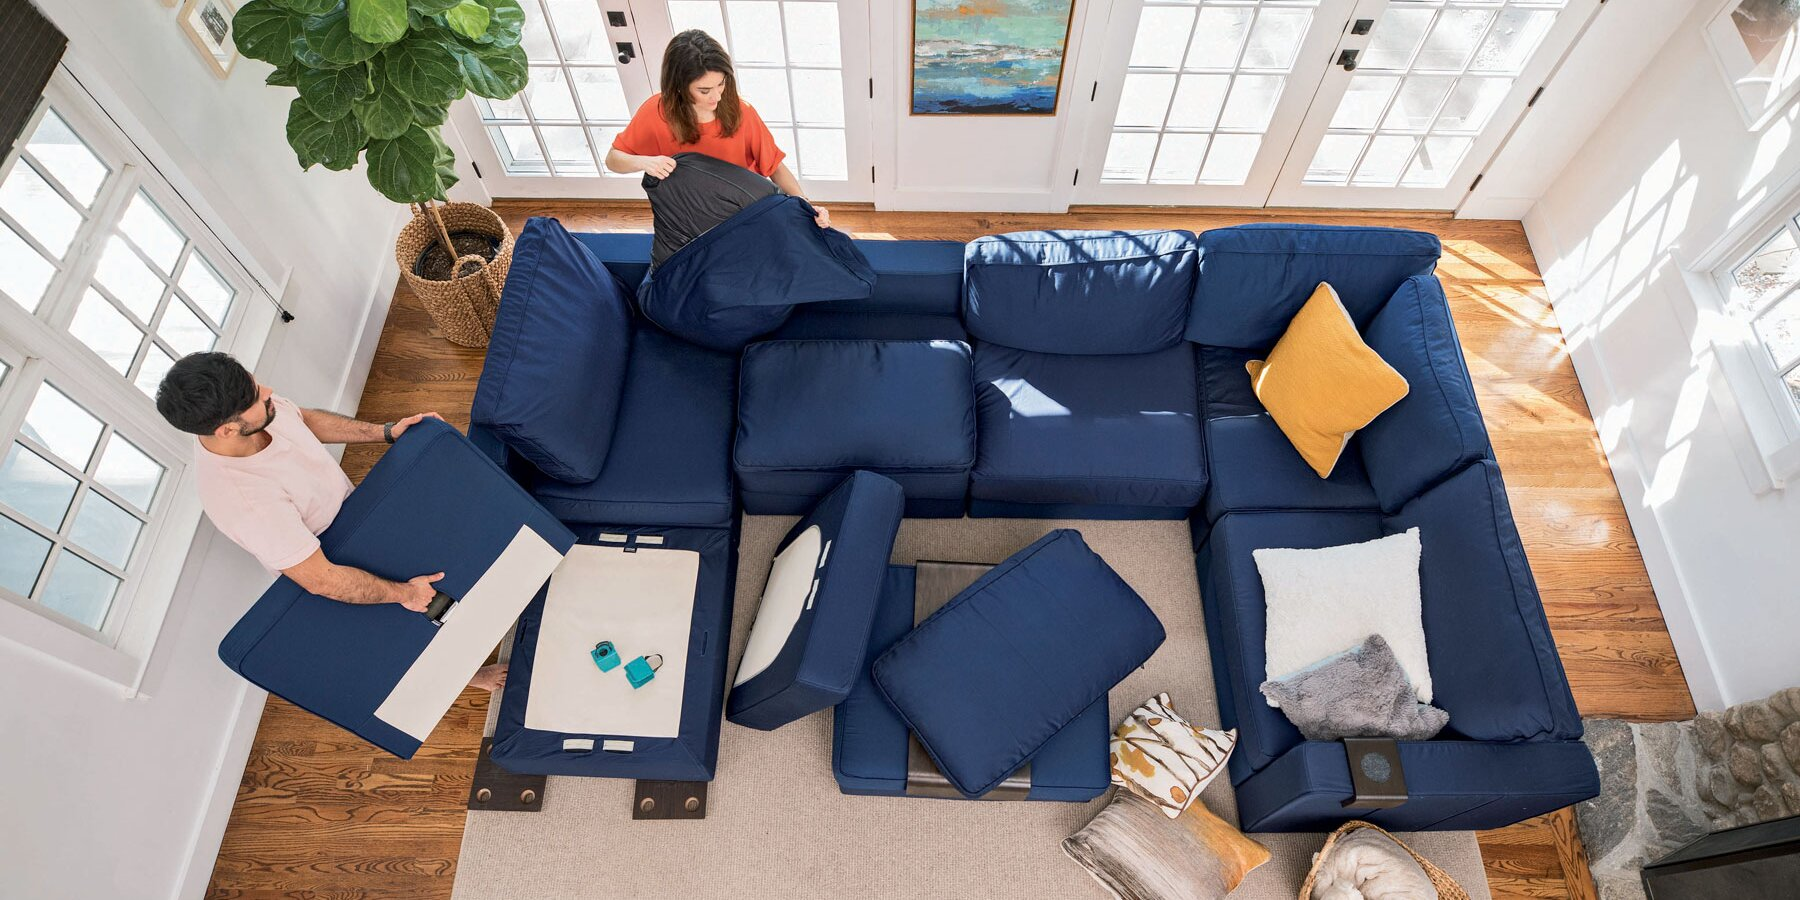 Lovesac Sactional Review The Versatile Couch We Ve Been Waiting For